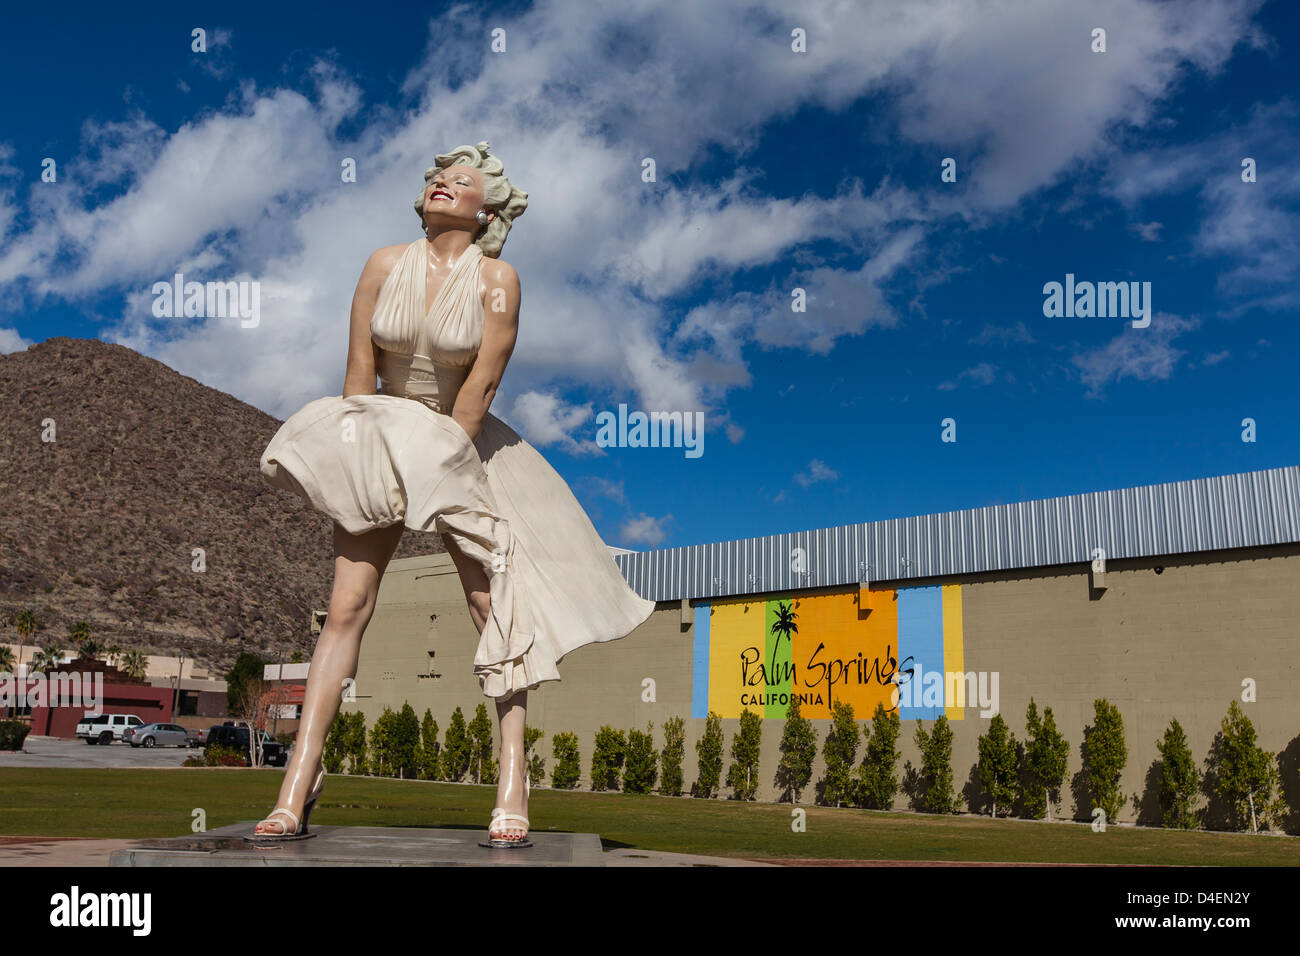 26 foot tall statue of Marilyn Monroe by Seward Johnson, heir to the Johnson & Johnson fortune, that stands - Stock Image